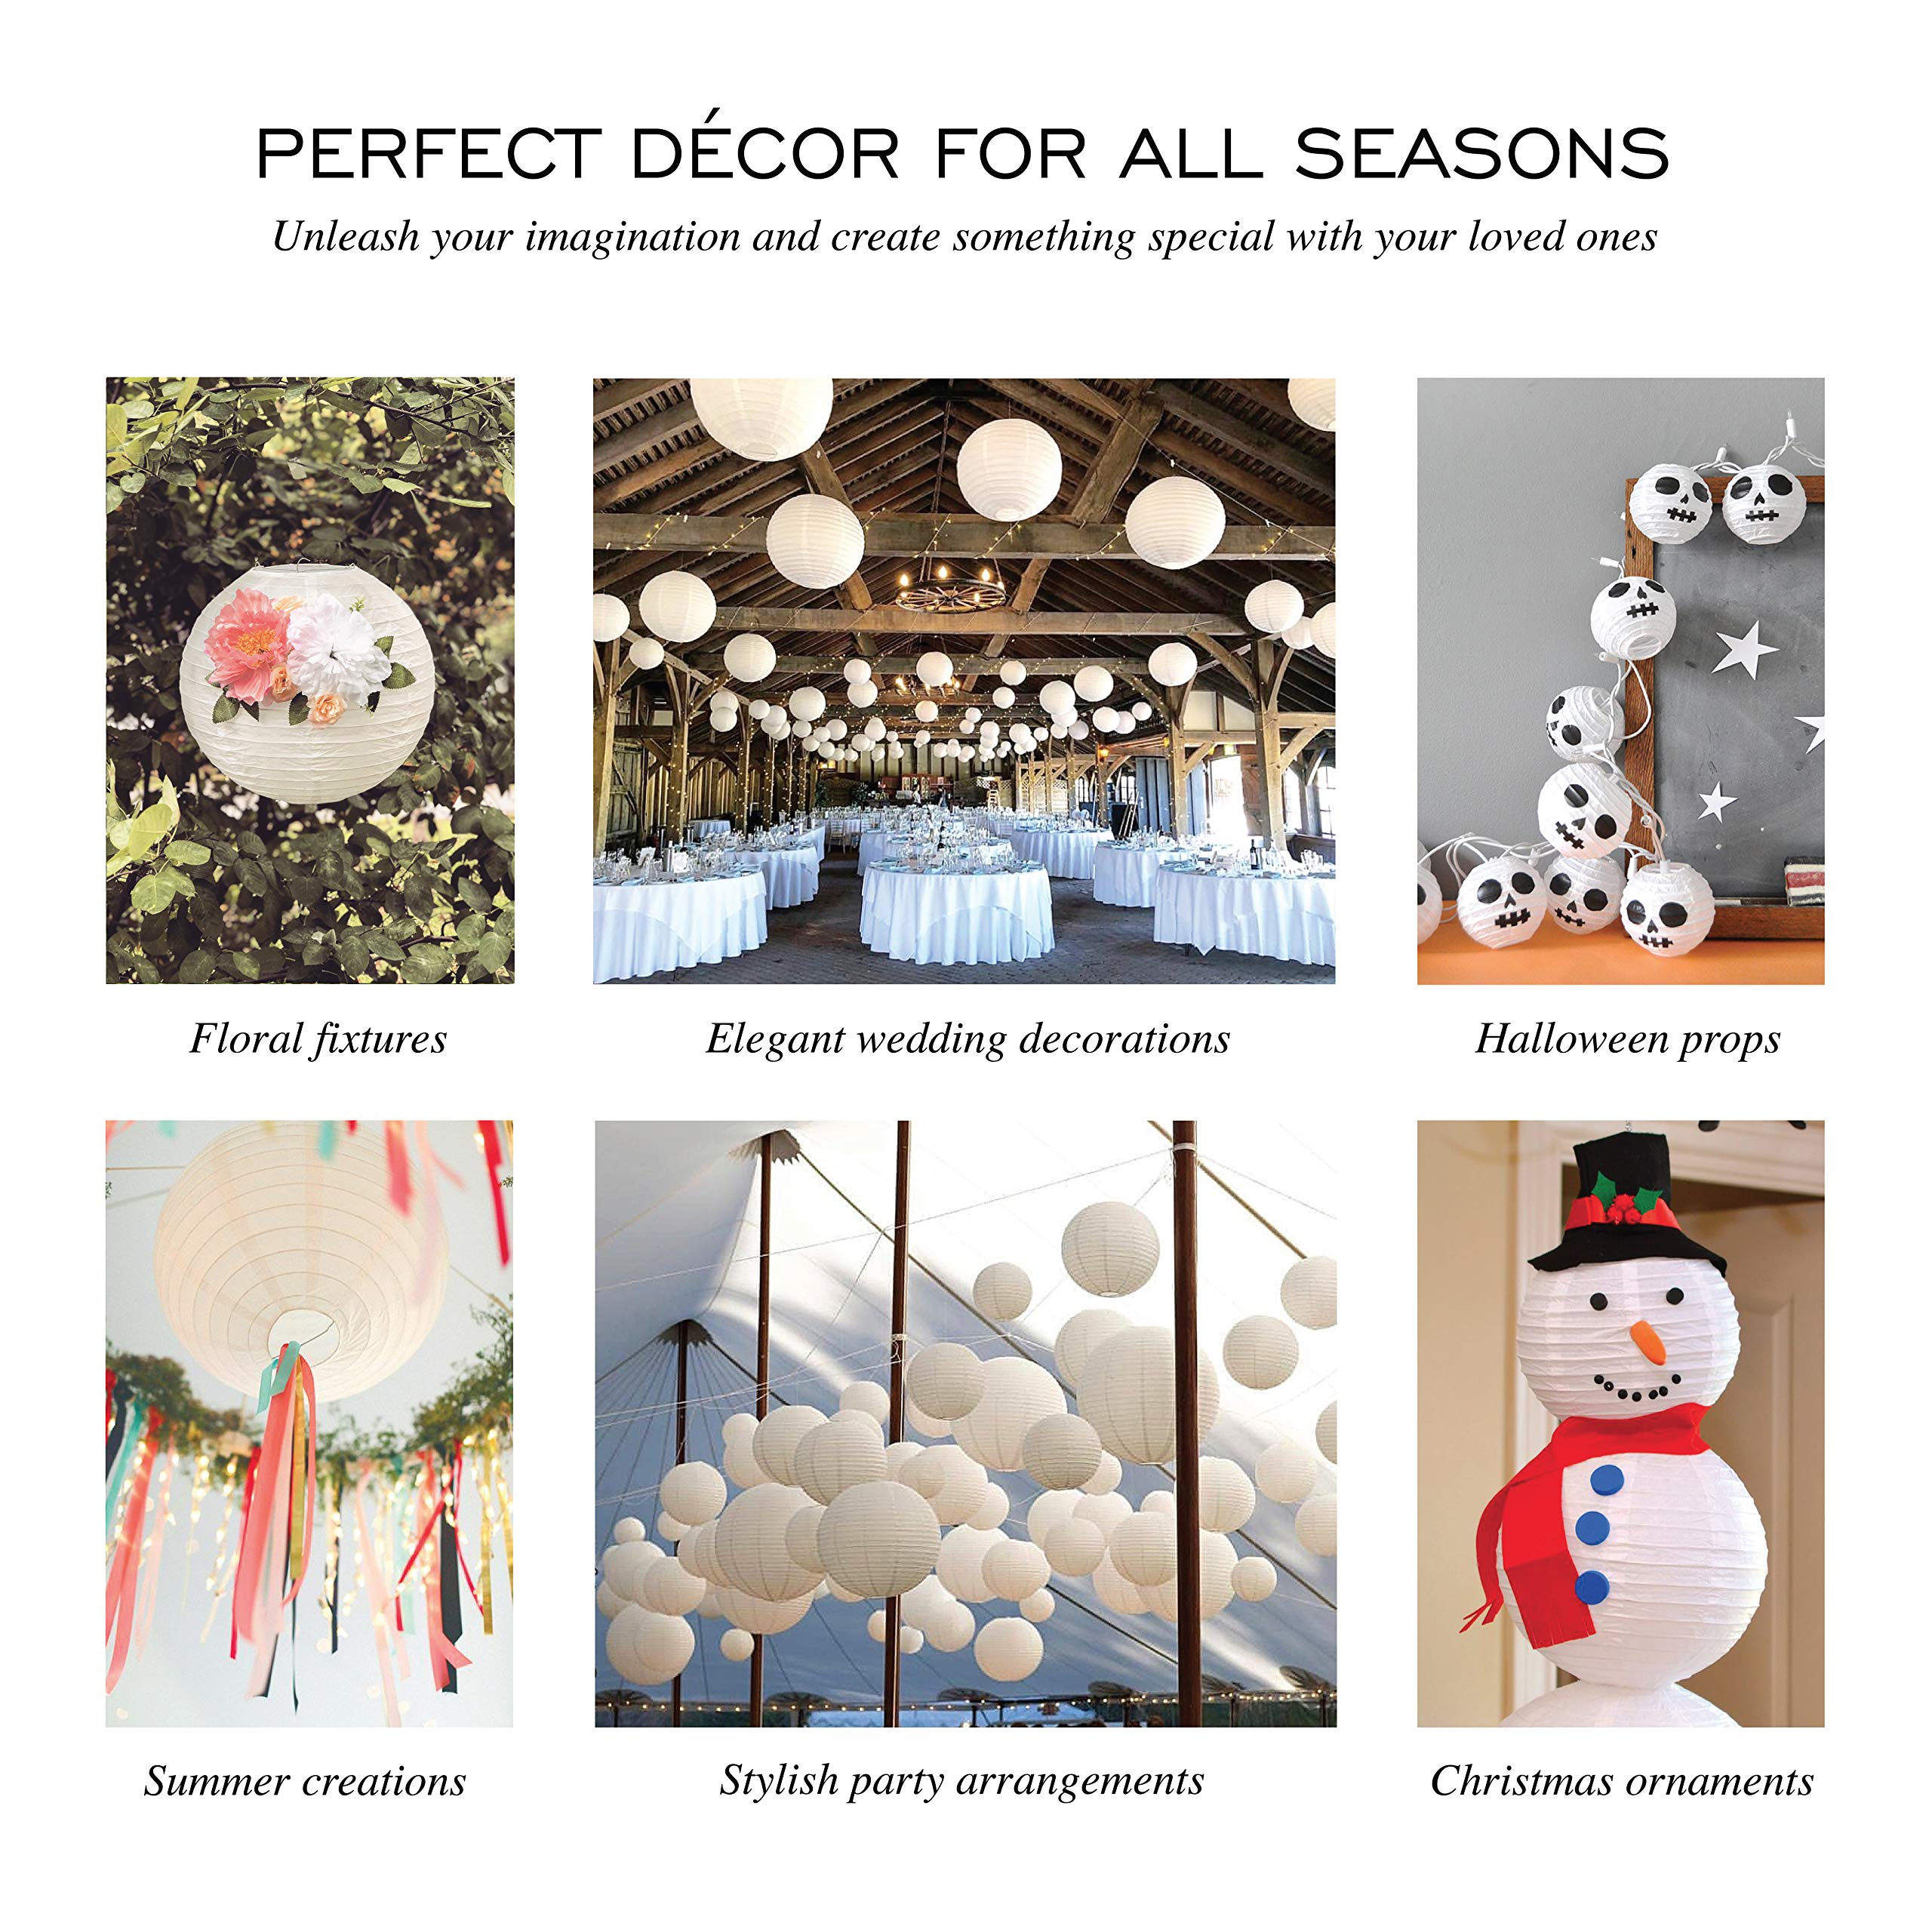 Special Feelings 25 Pack White Paper Lanterns Set (Assorted Sizes of 6, 8, 10, 12 Inch) for Weddings Birthday Parties, Baby Showers, Classroom Decoration and More and More, by Special Feelings (Image #2)